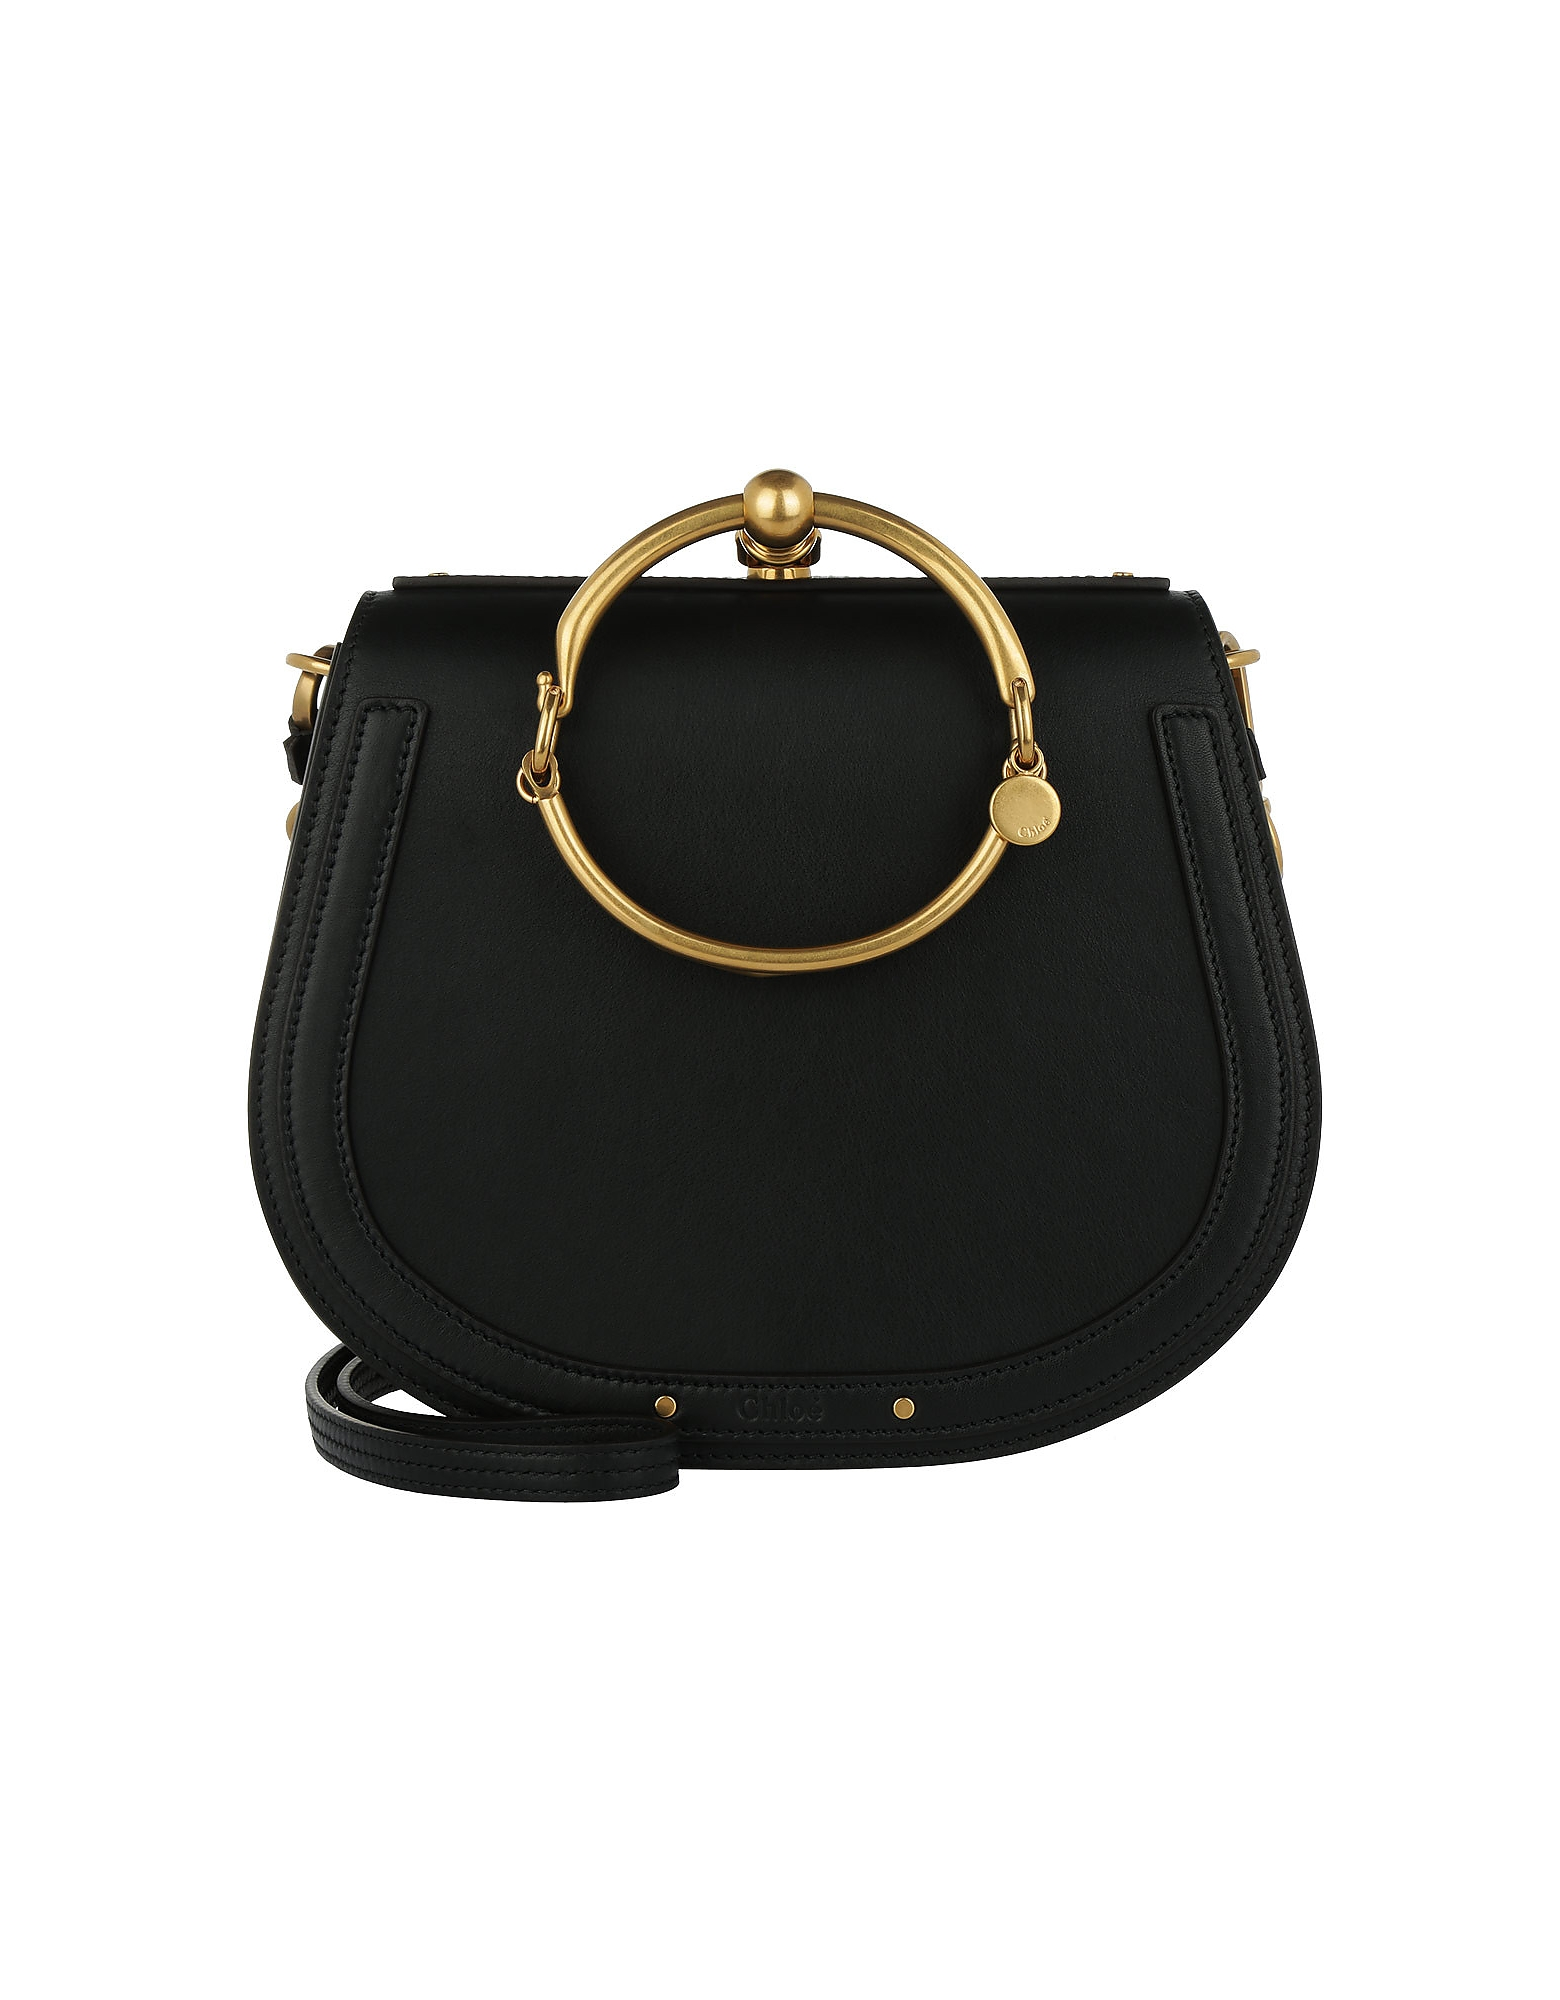 BUY Chloe Designer Handbags, Nile Bracelet Bag Black   Australian ... b836475eb0